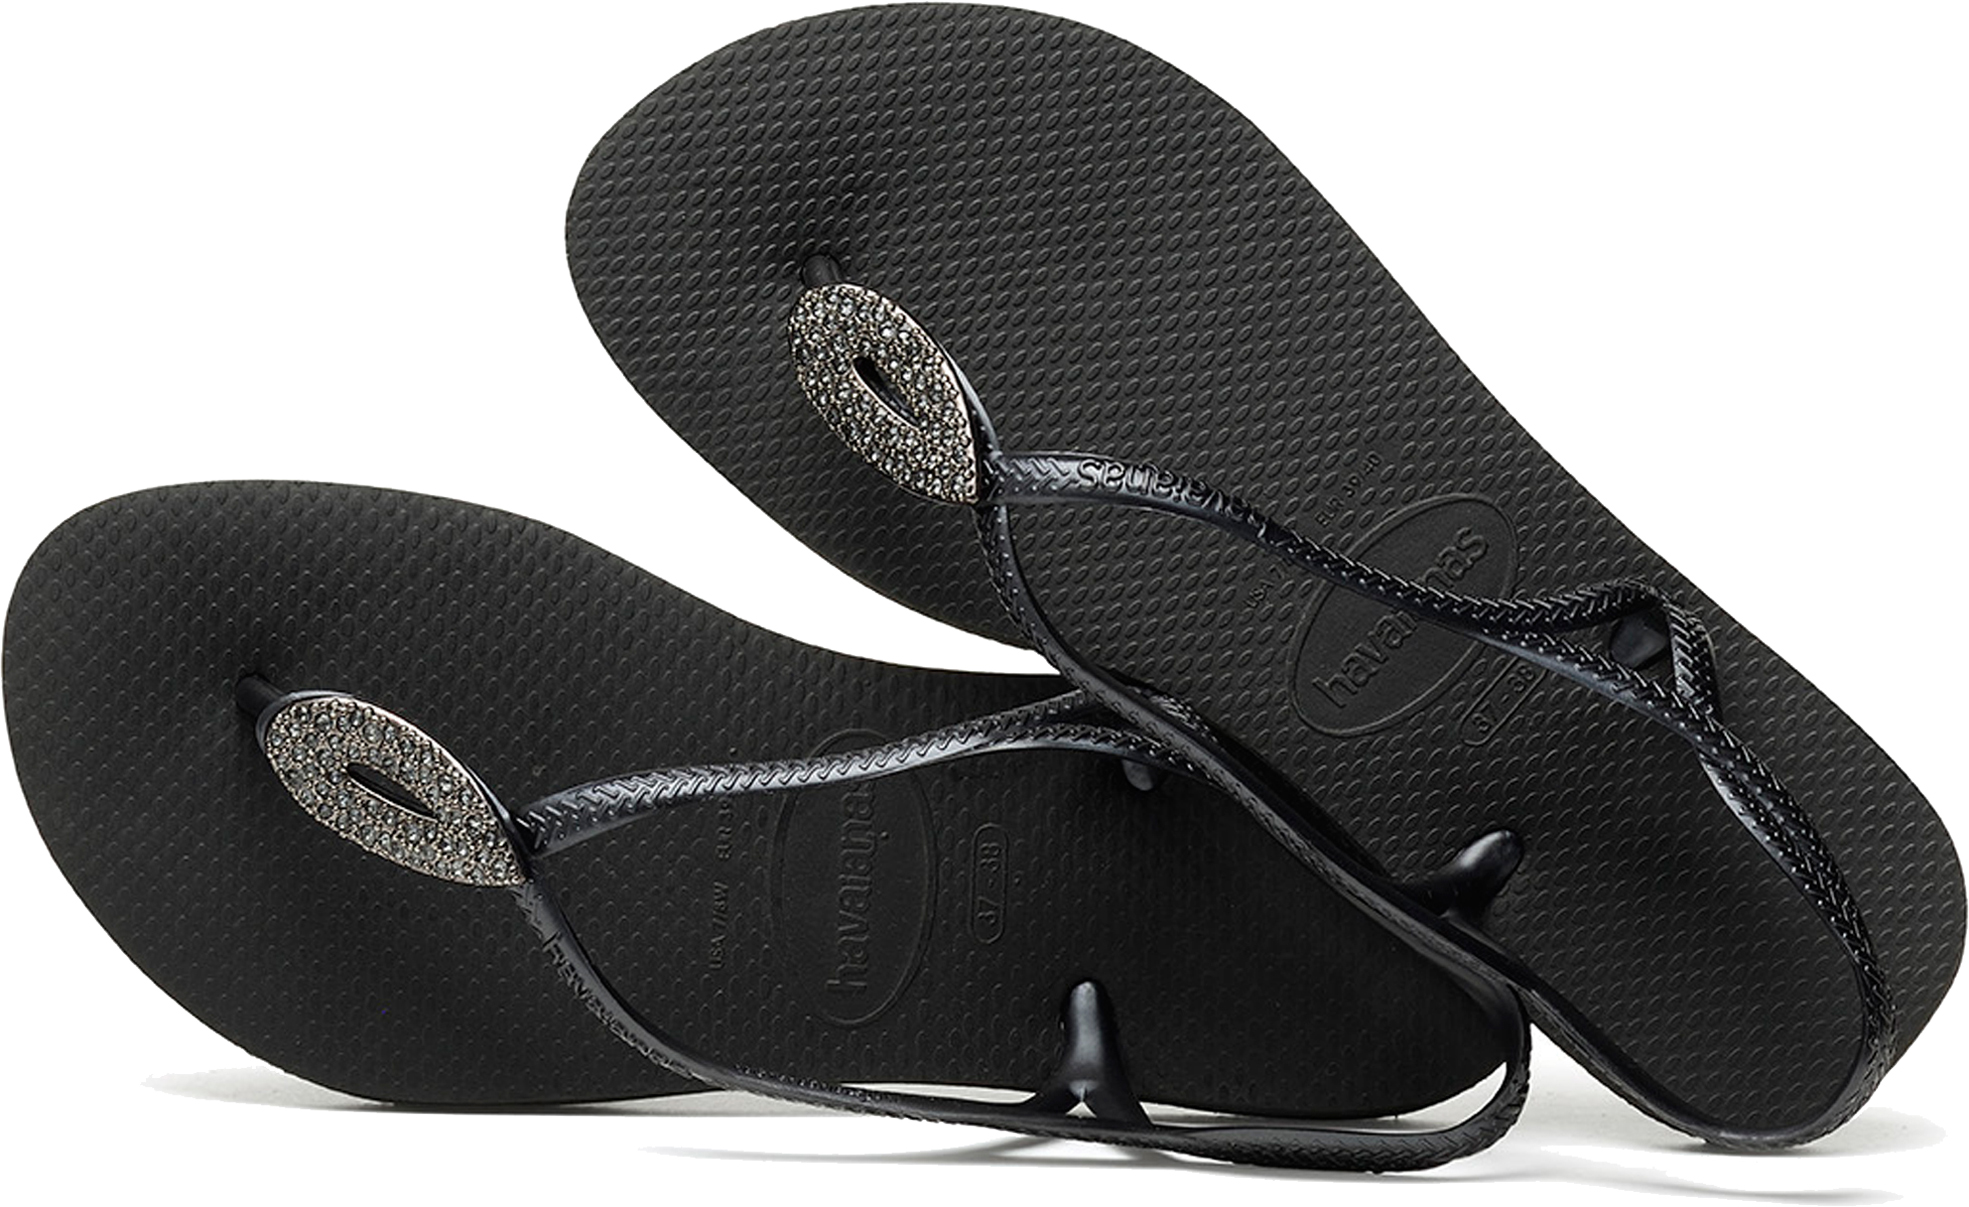 b1b577ae0ac147 Havaianas Luna Special Women s Flip Flops With Heel Strap. Uk8 Black dark  Grey. About this product. Picture 1 of 5  Picture 2 of 5  Picture 3 of 5 ...